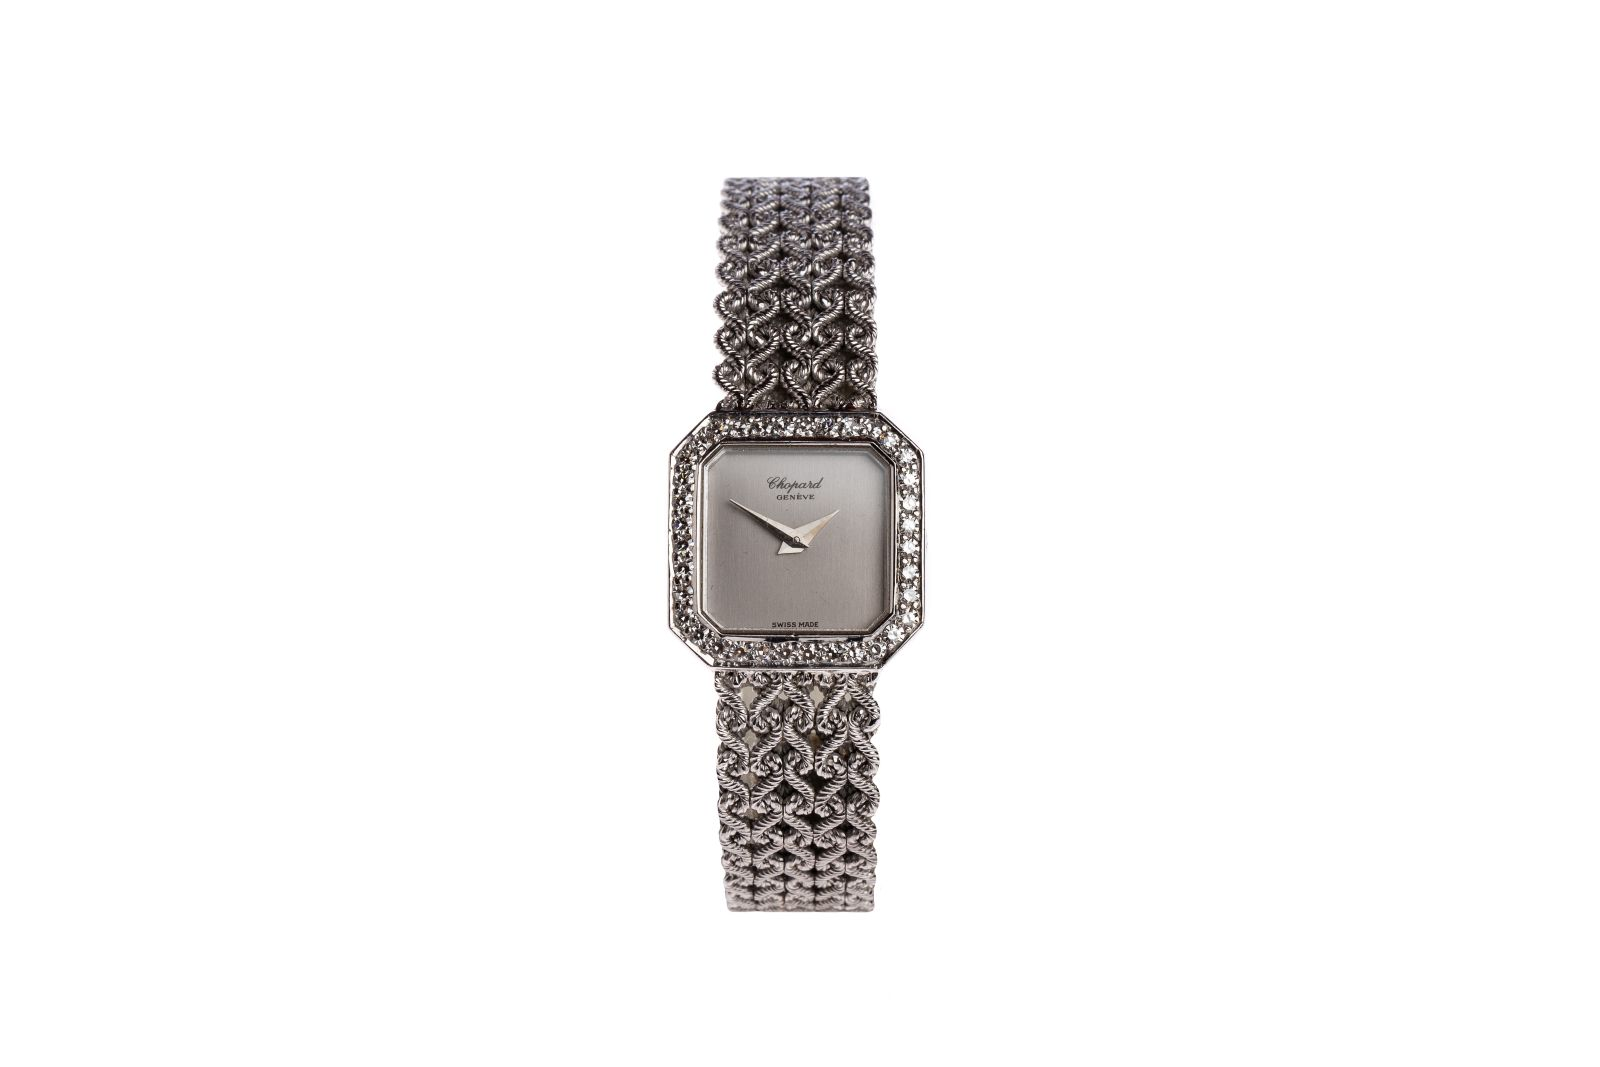 #23 Chopard white gold with brilliant bezel | Chopard Weißgold mit Brillant Lünette Image